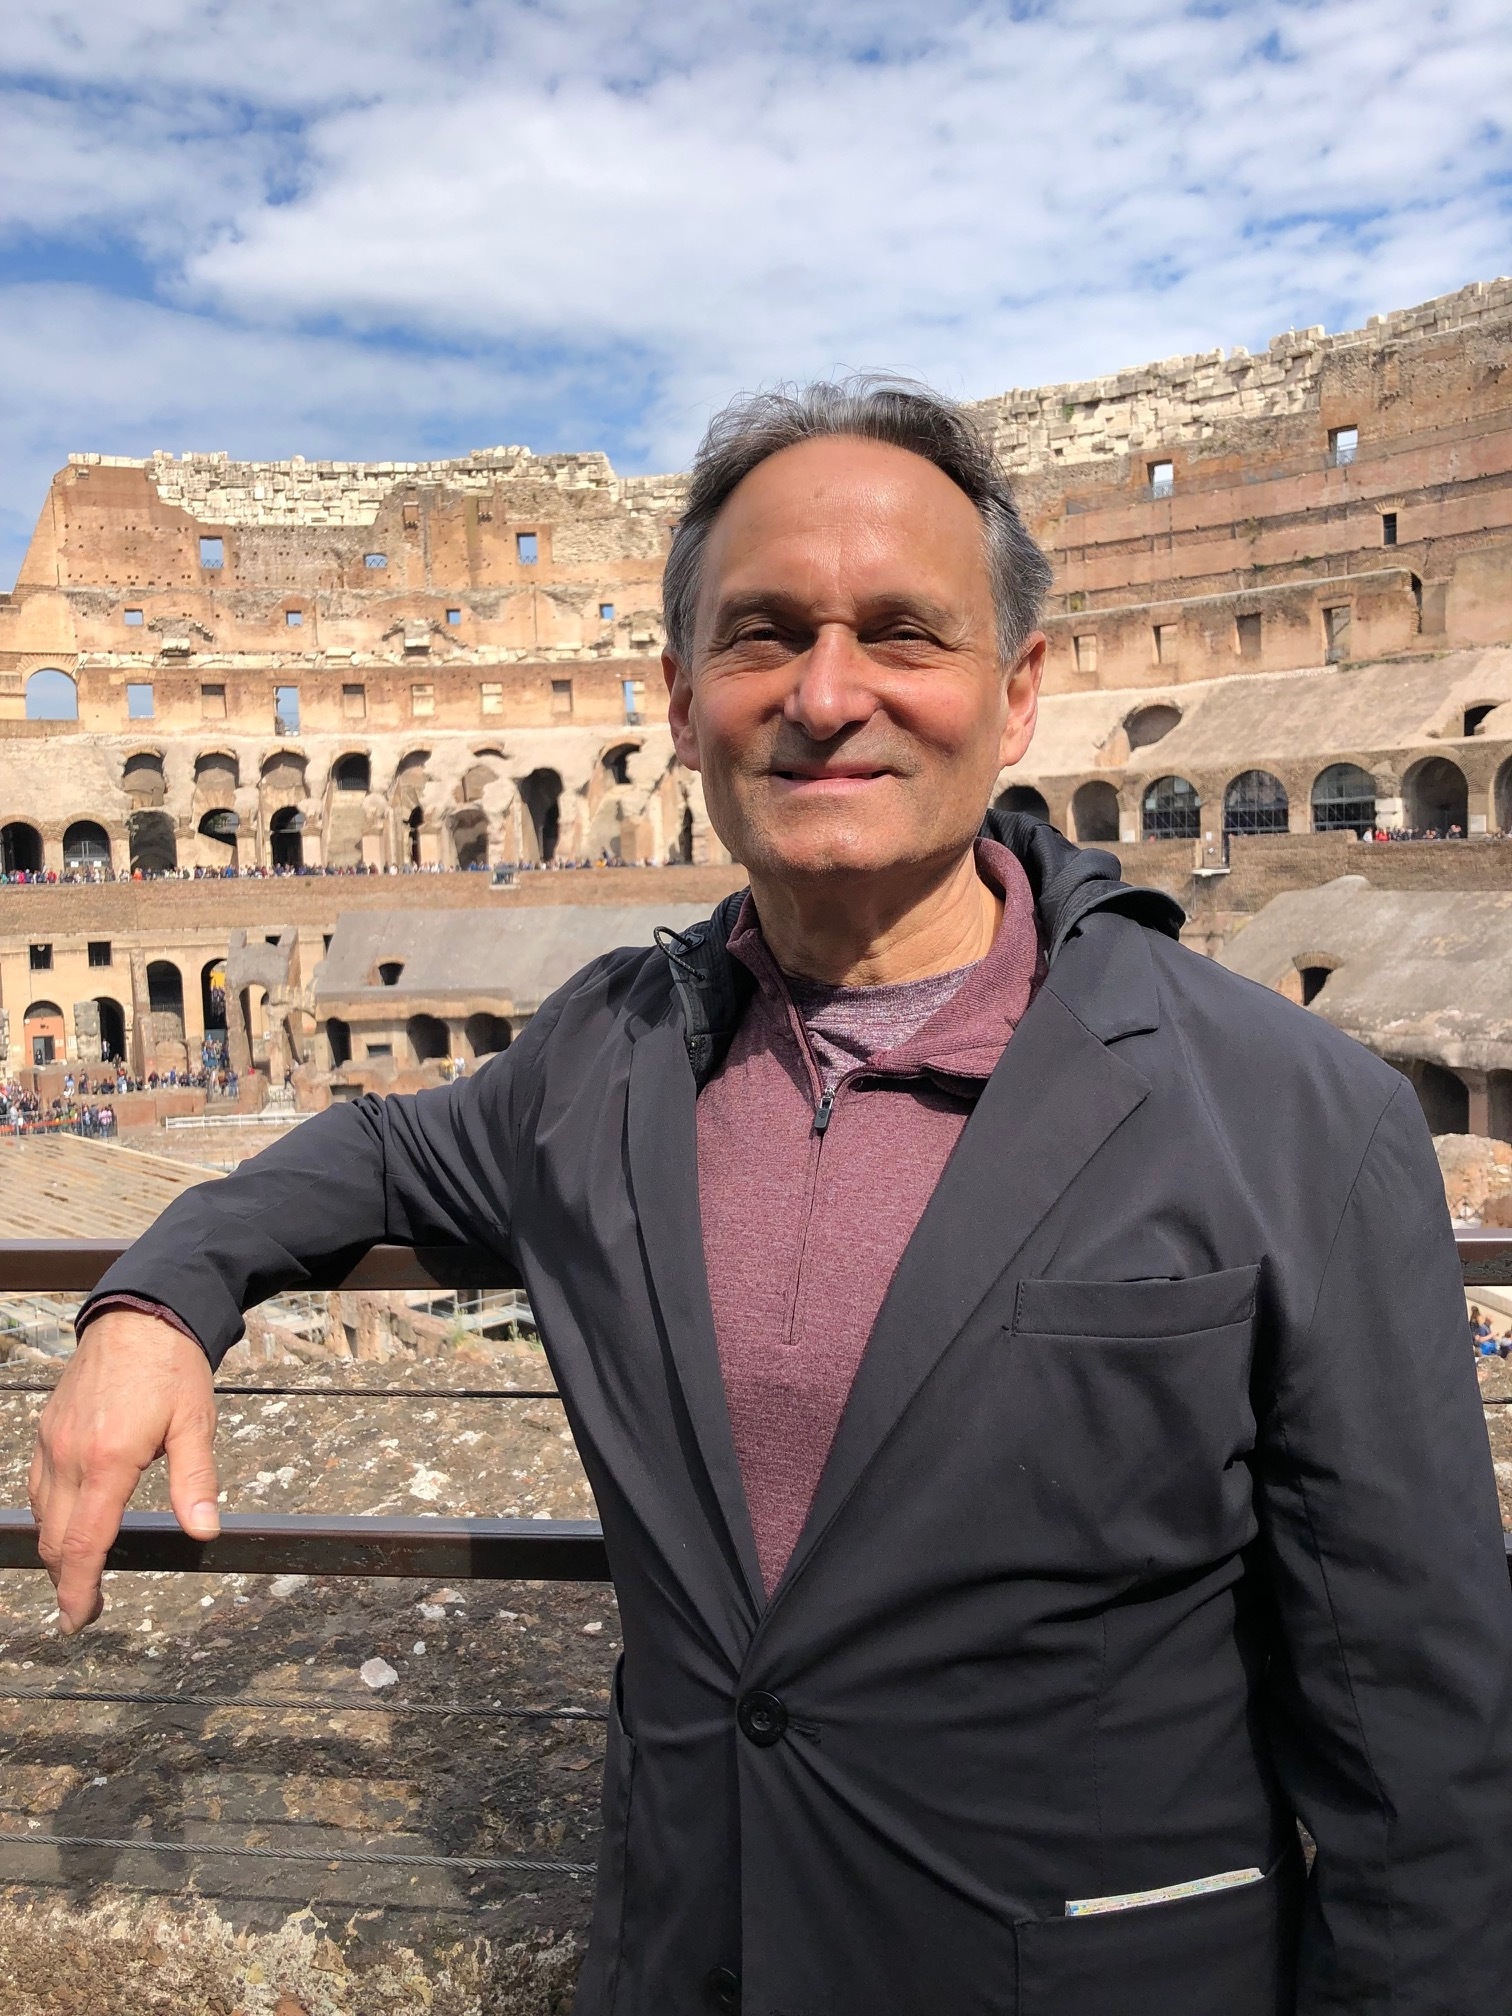 Roy and the ancient Colosseum in Rome.